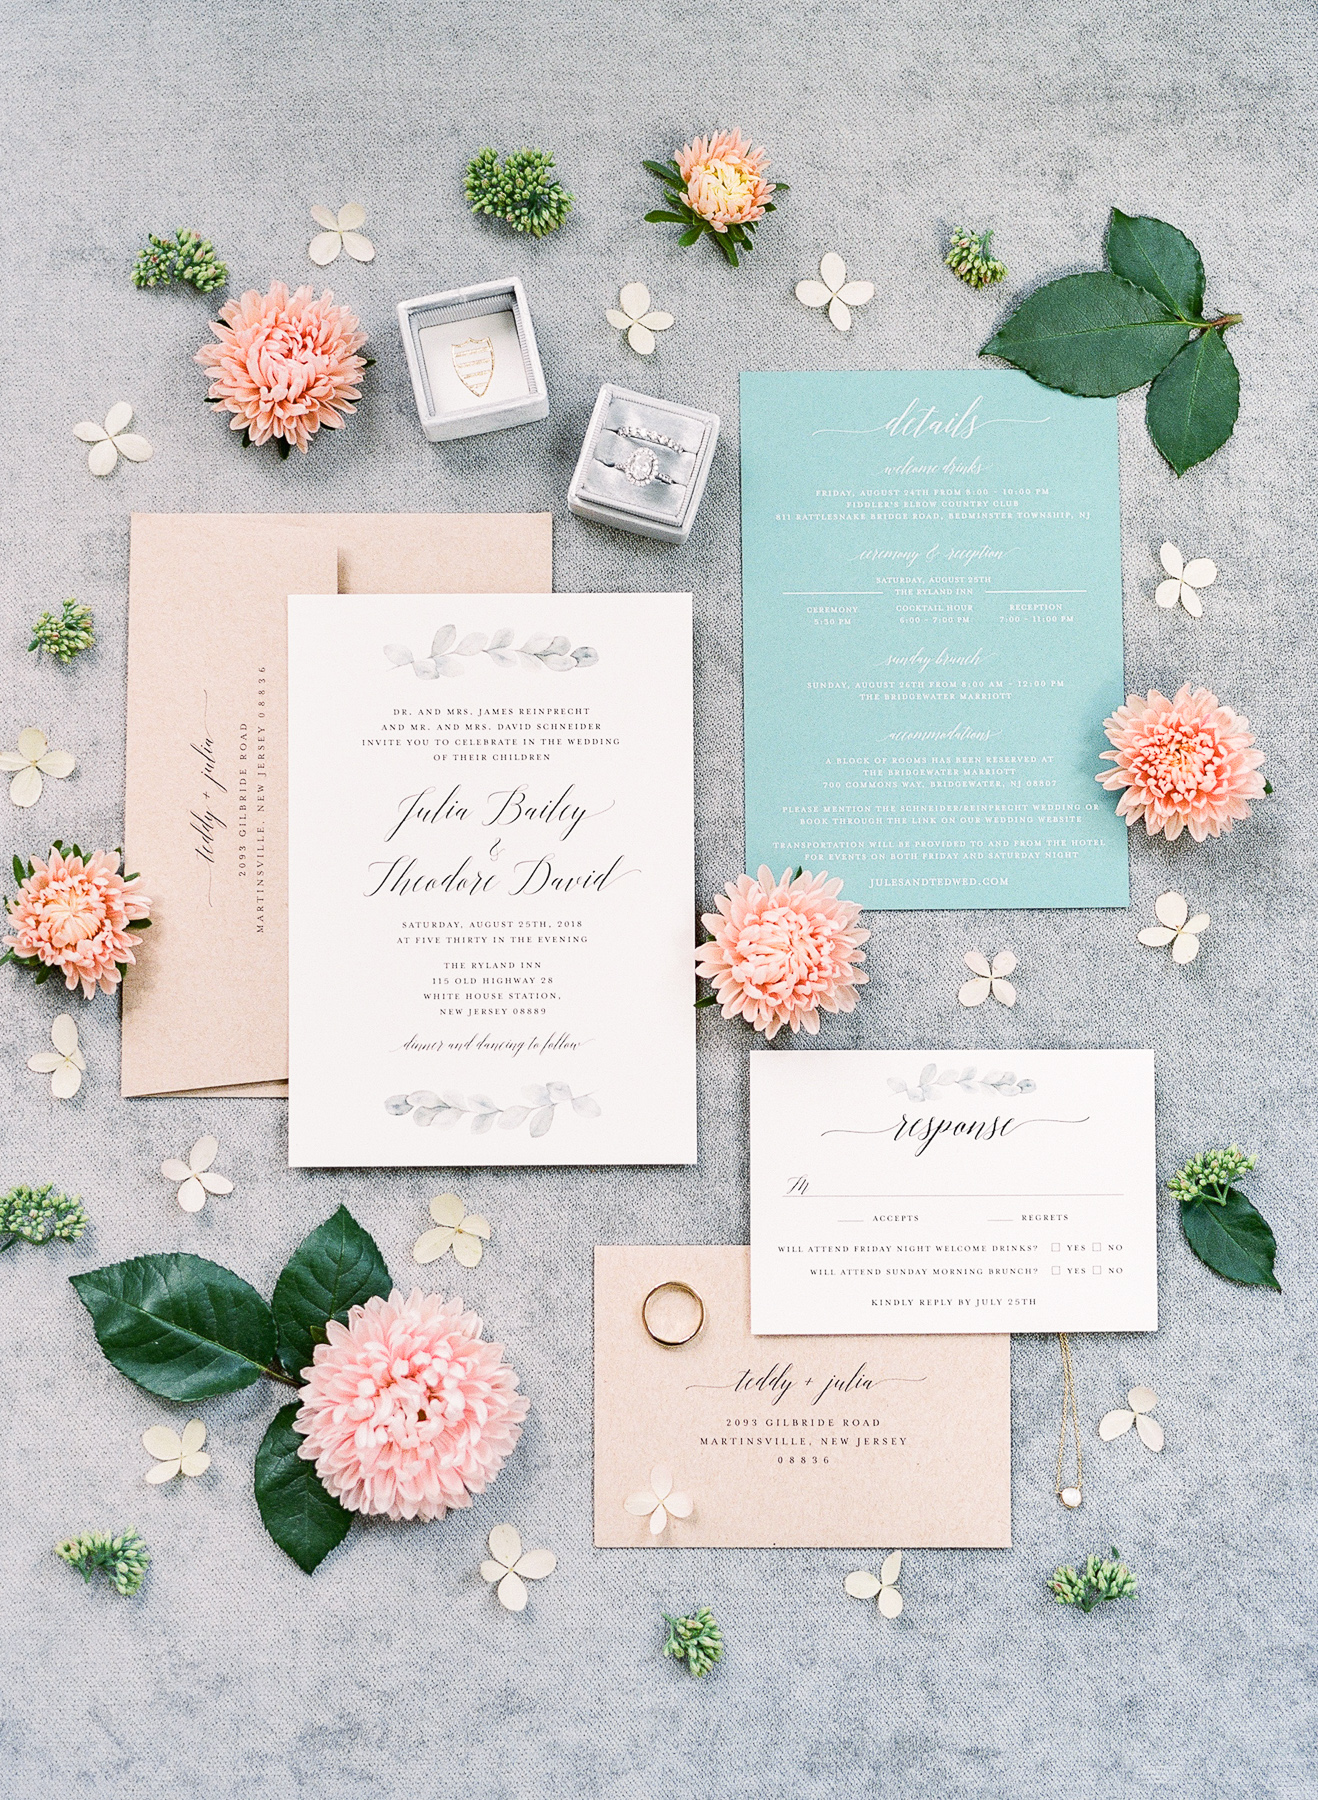 Blue Invitation Suite on Locust Collection Styling Board